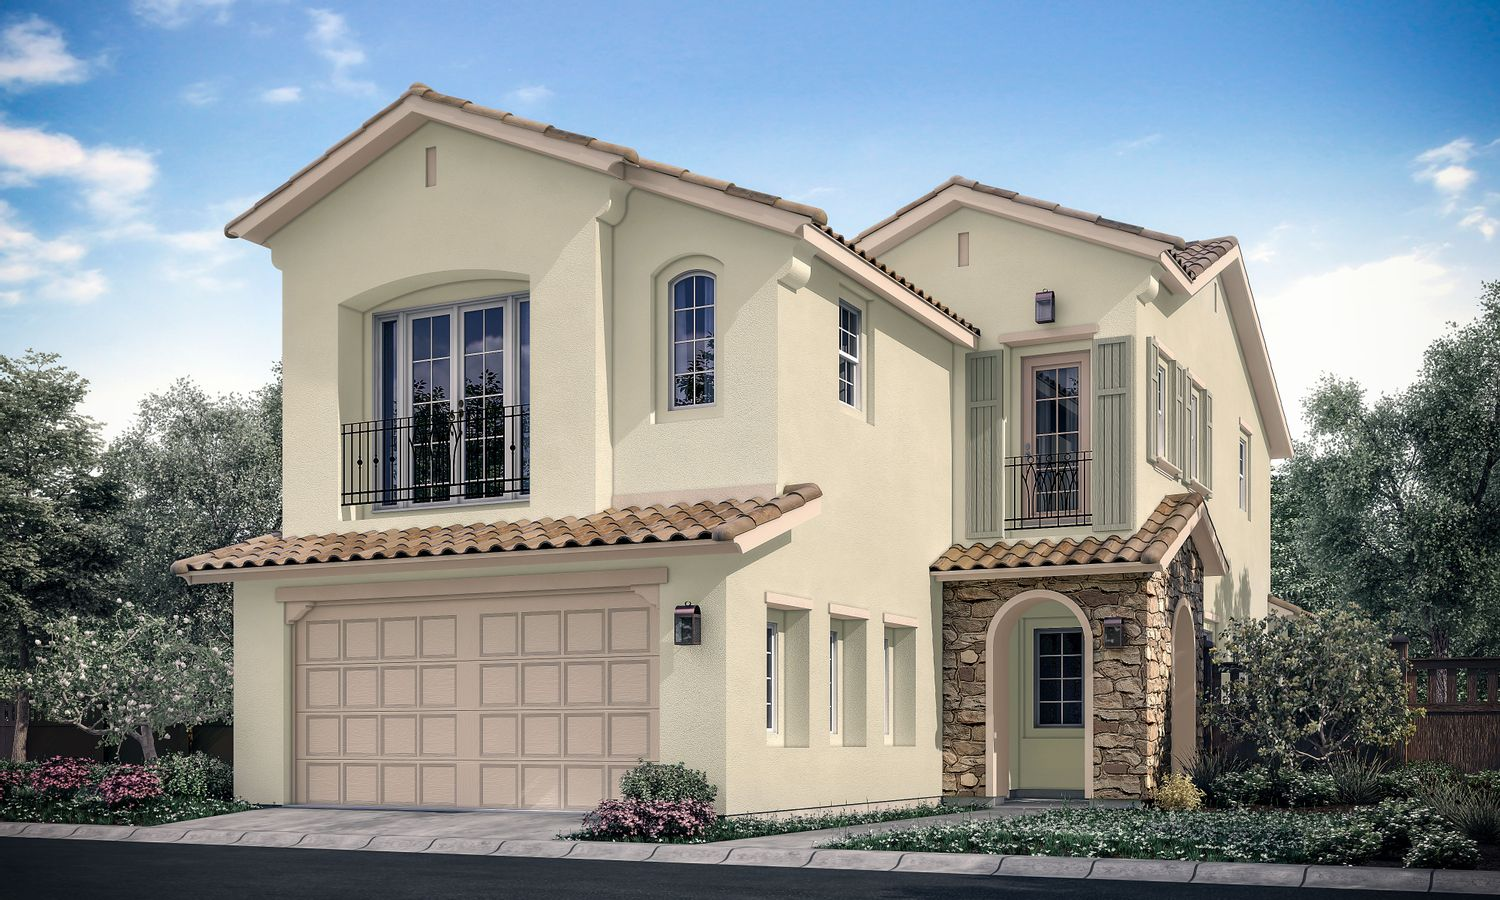 Single Family for Active at Gallery At River Ridge - Augusta - Plan A 1831 W Vineyard Ave Oxnard, California 93036 United States